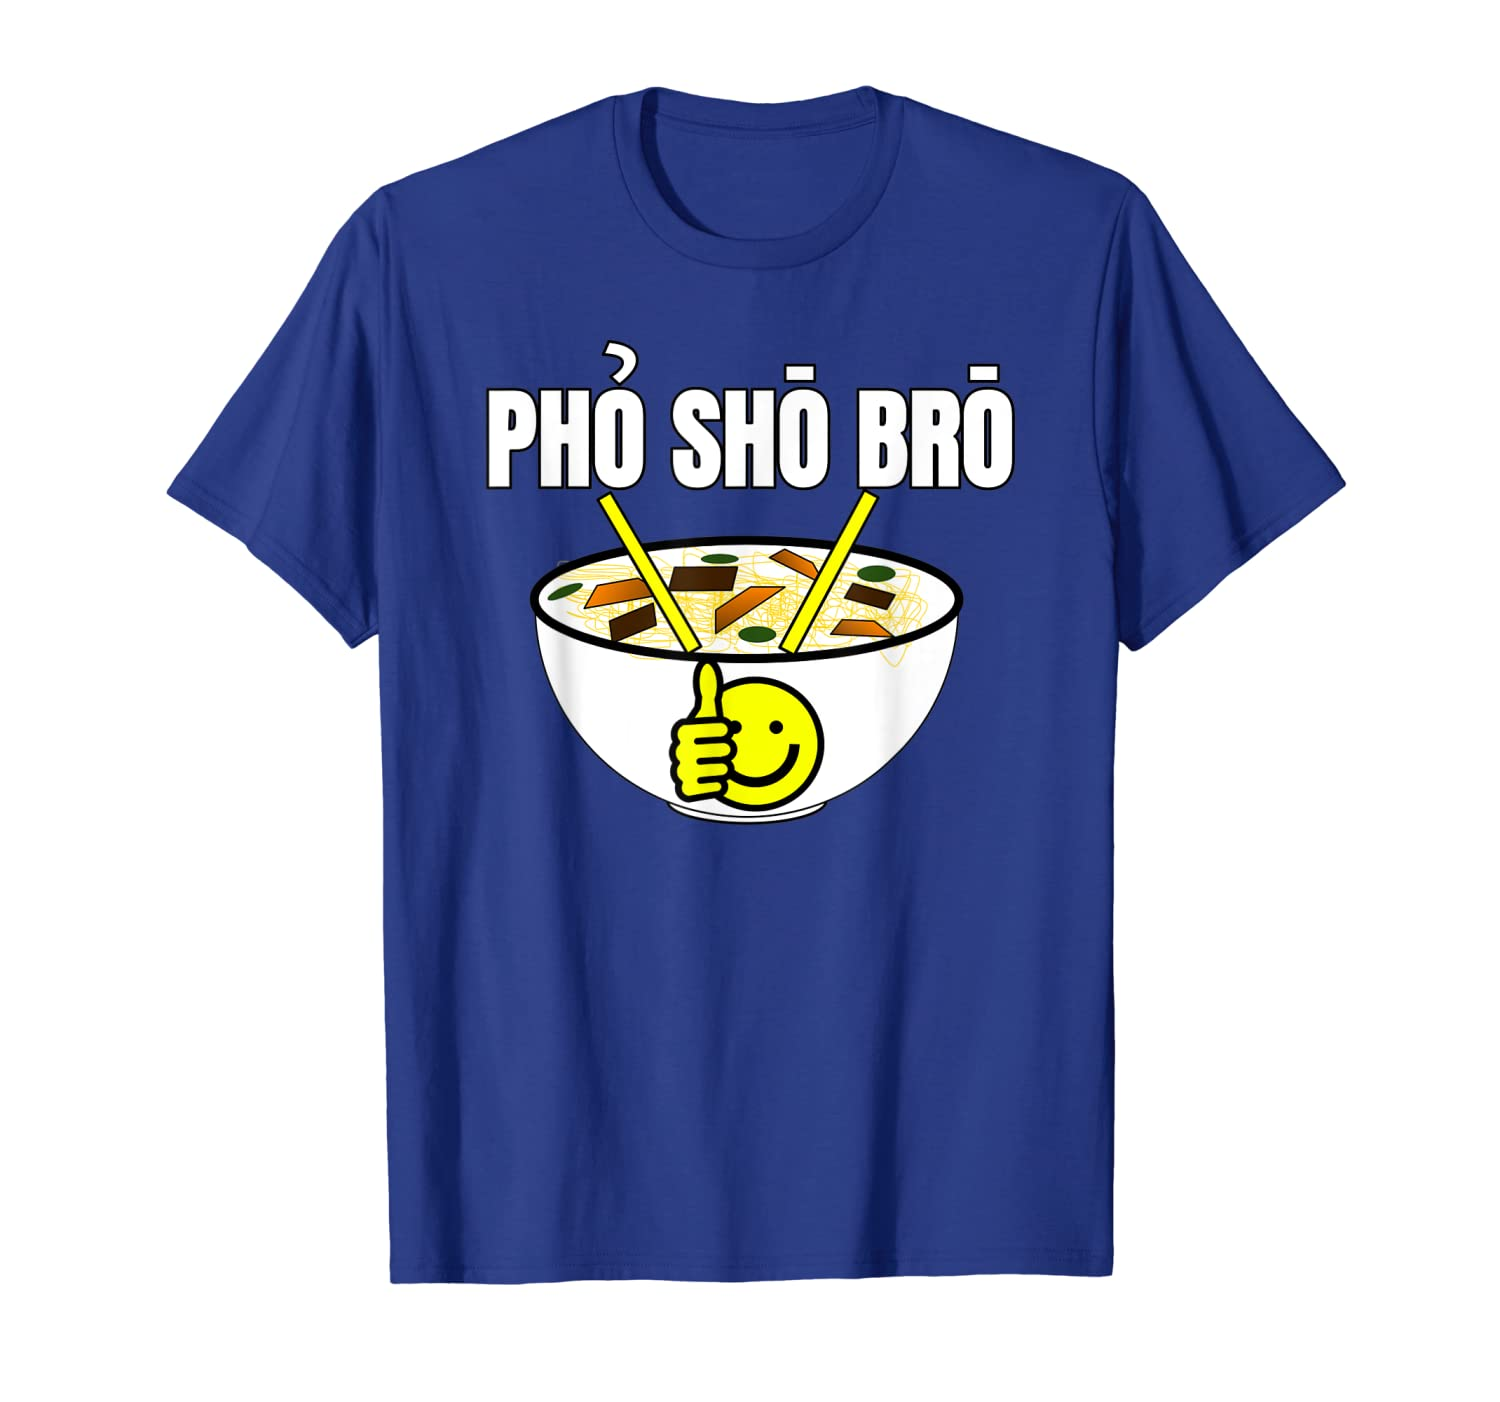 Amazon com: PHO SHO Shirt Big Bowl Of Pho Noodle Soup Funny